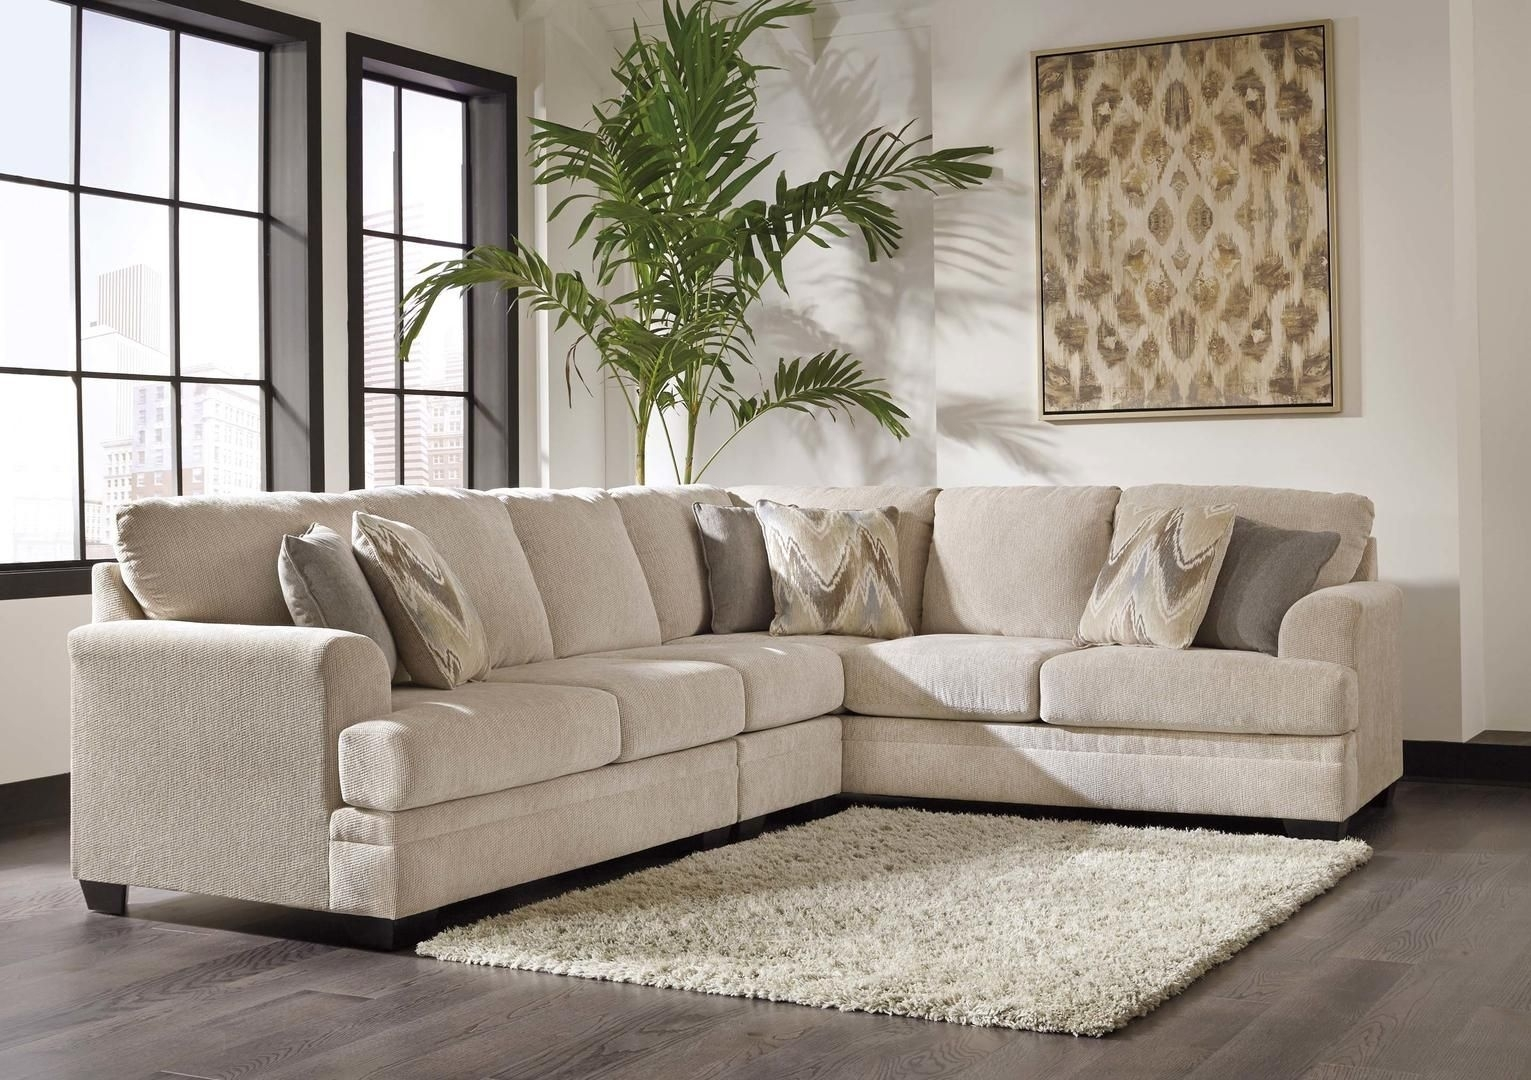 Ameer 81806 55 46 67 3 Piece Fabric Sectional Sofa With Left Arm With Malbry Point 3 Piece Sectionals With Raf Chaise (Image 14 of 25)